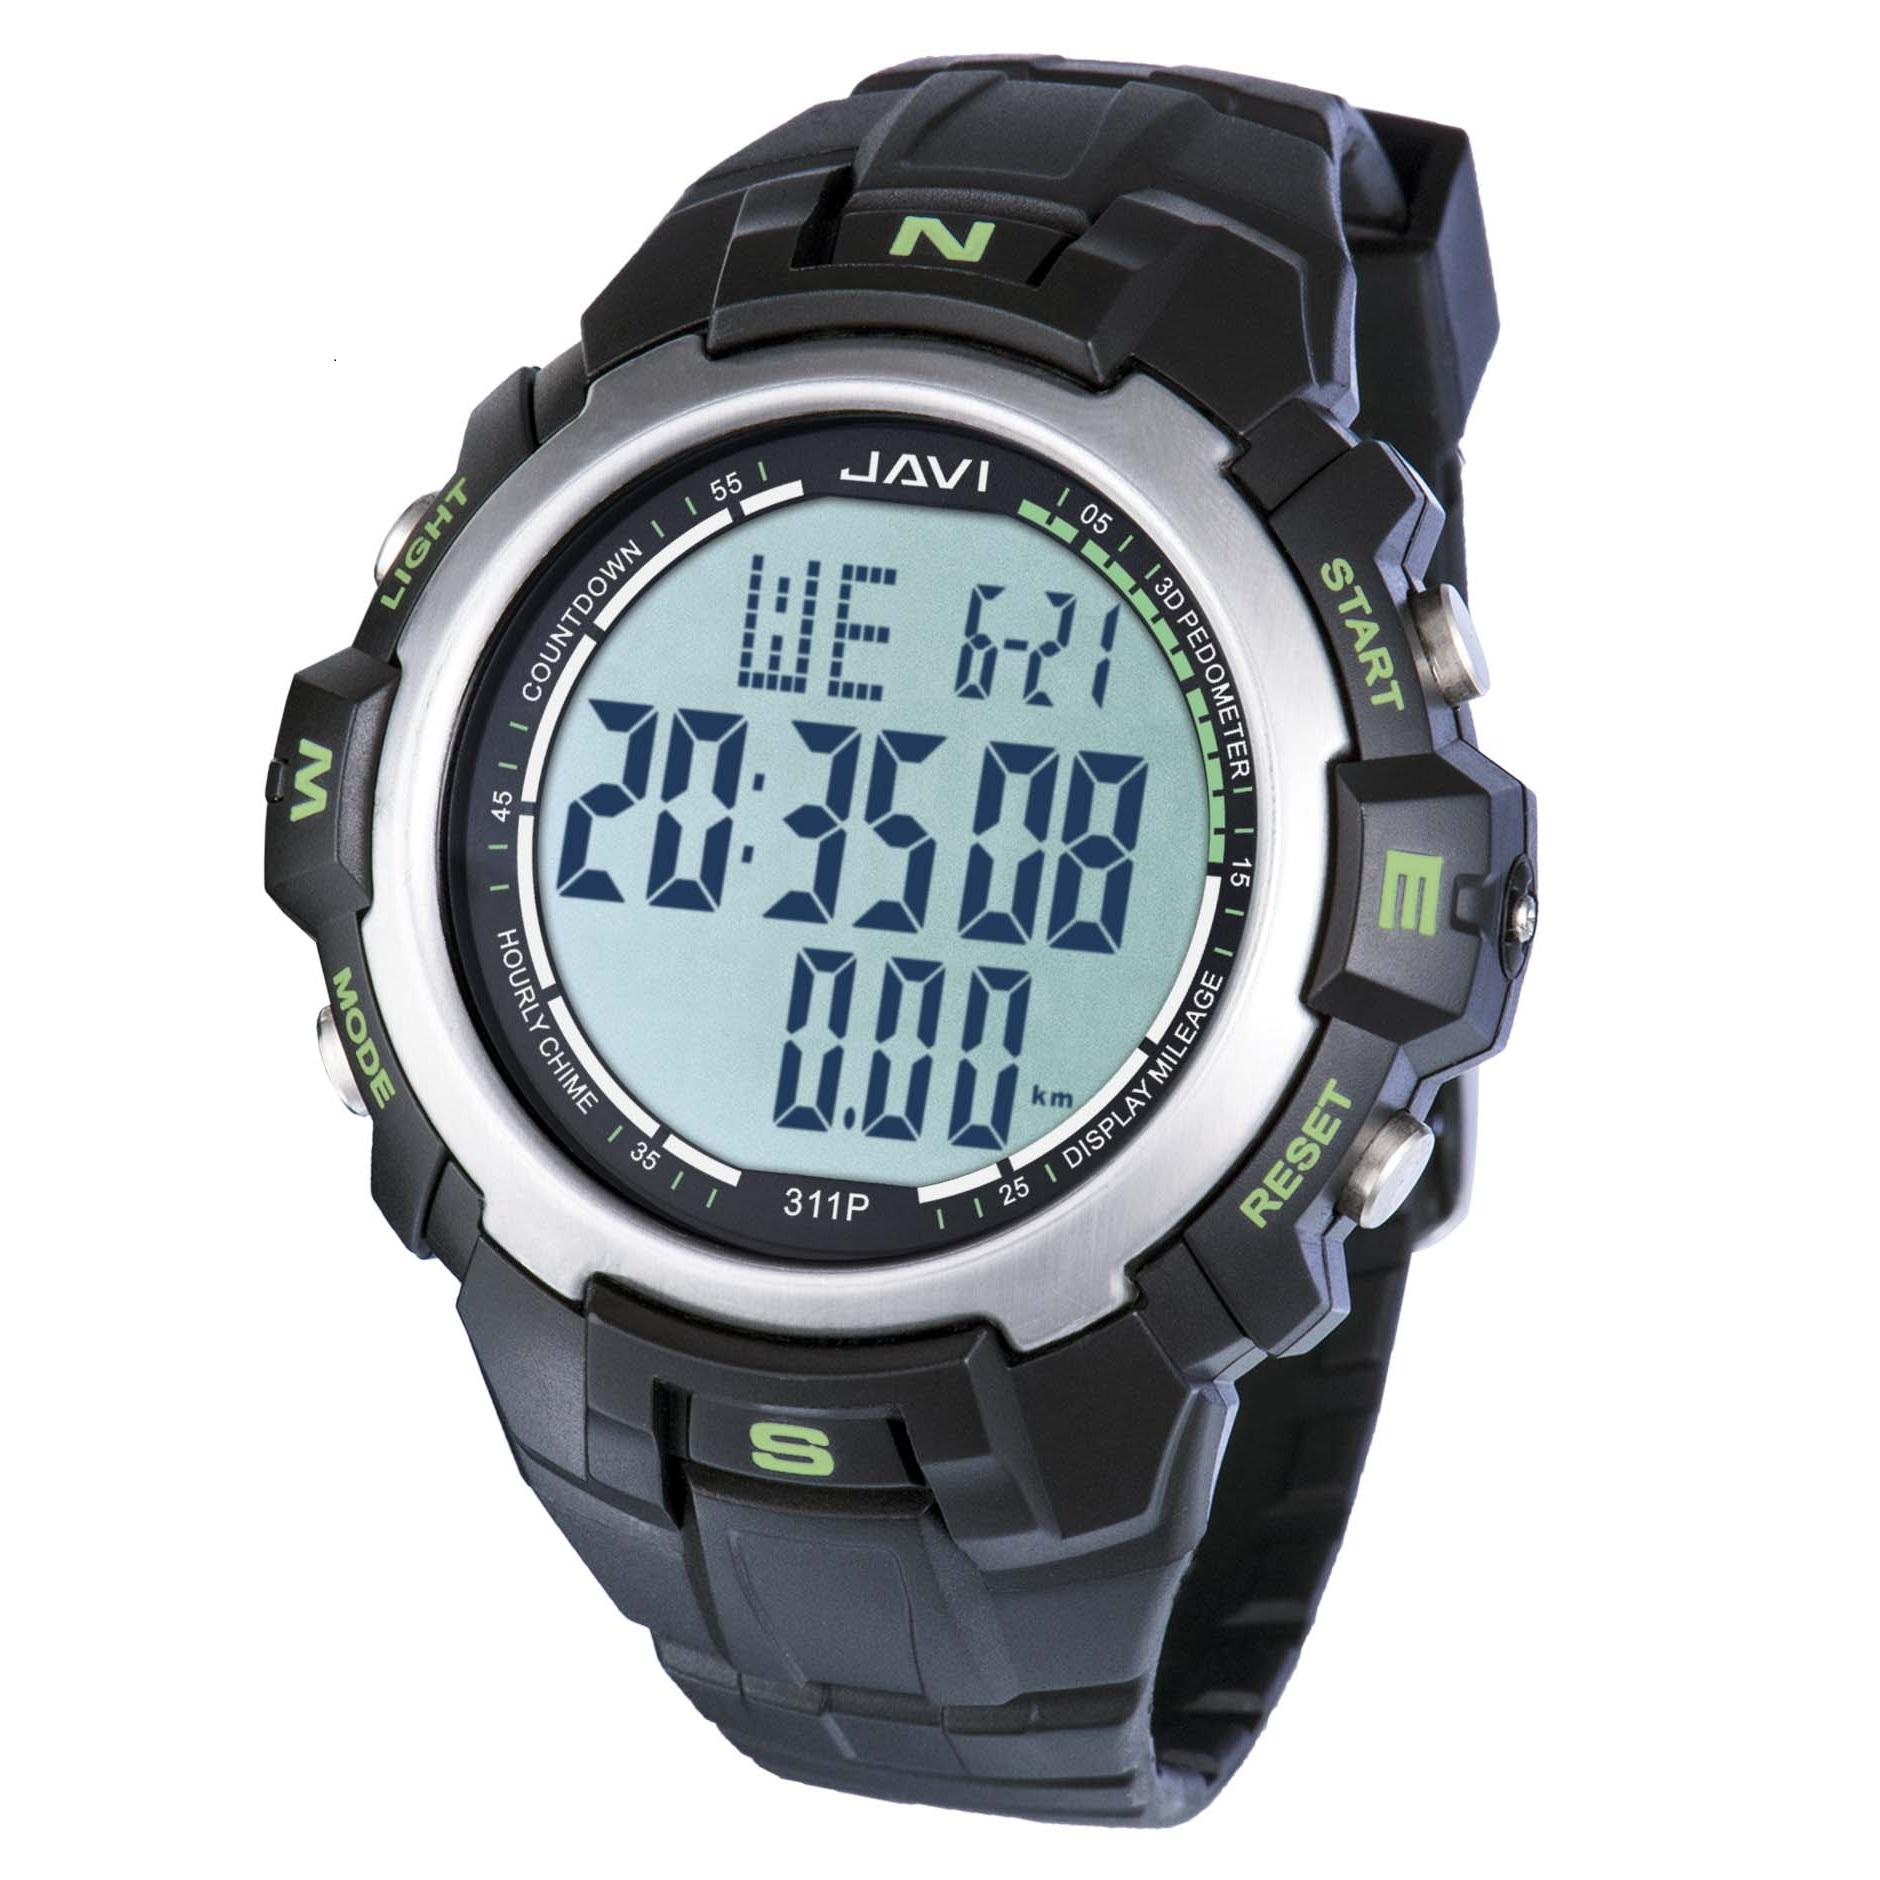 Shock Men's Analog Digital Electronic Watch Men G Style Sports Watches